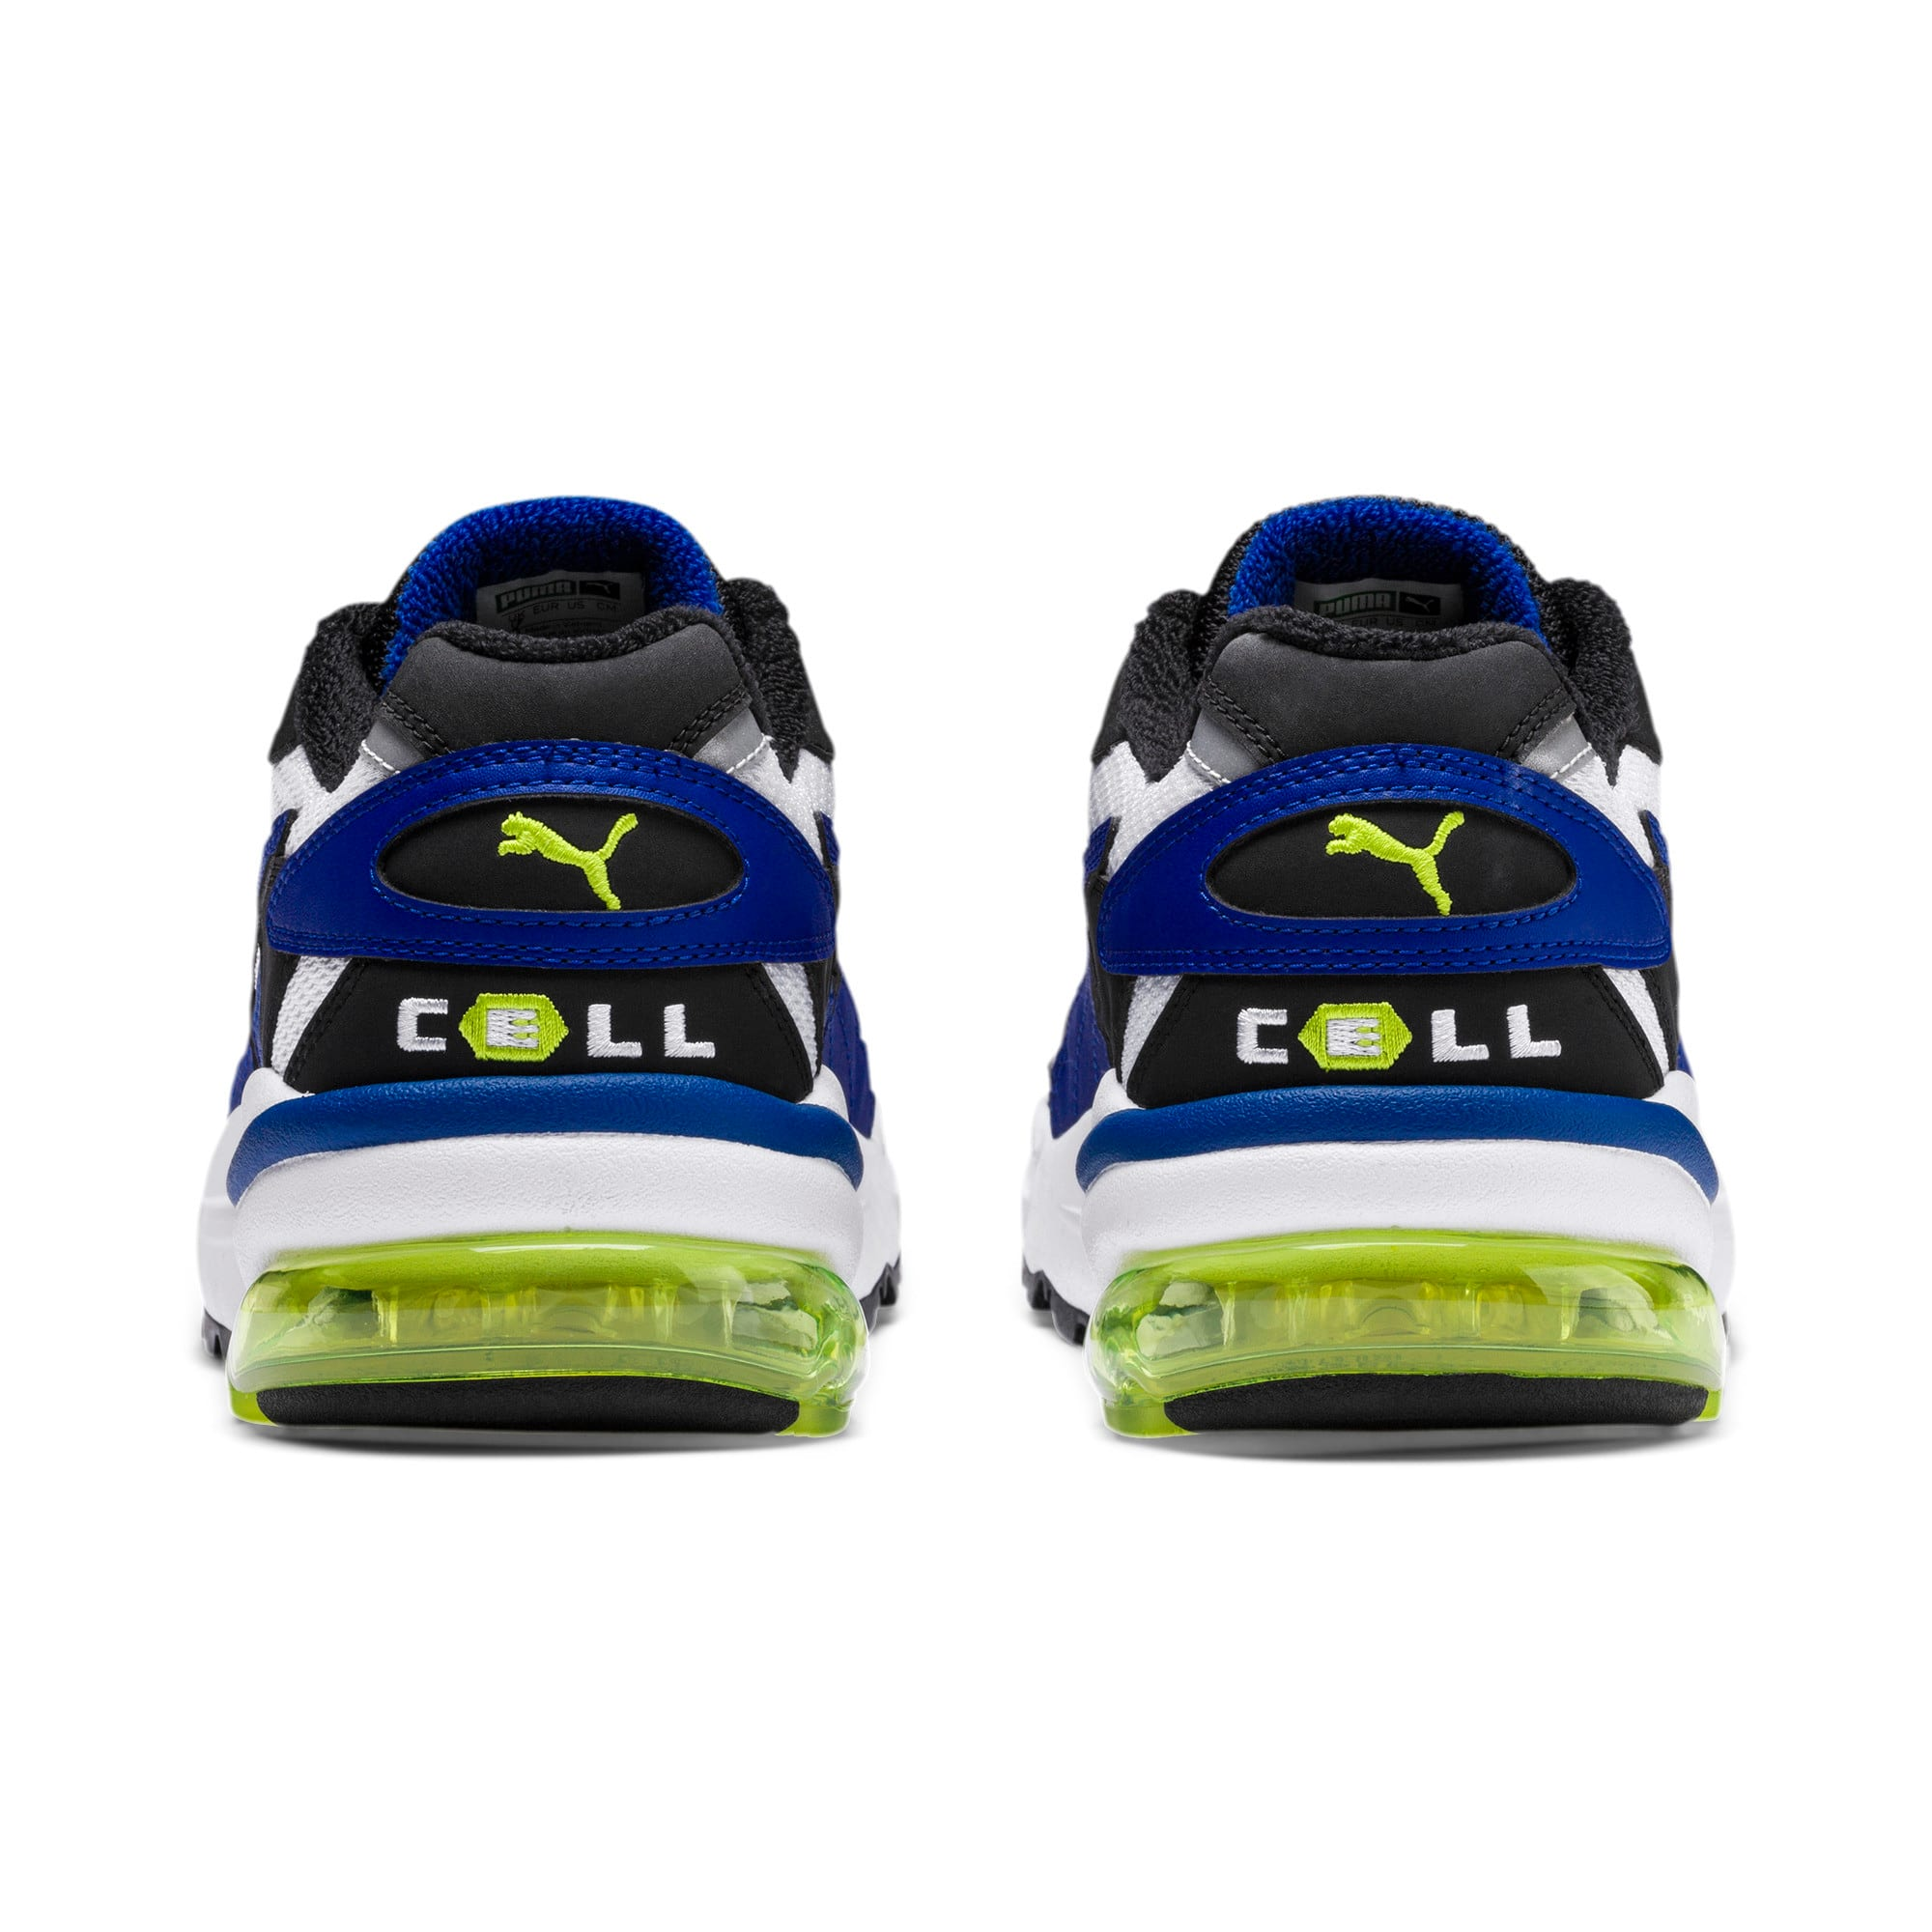 Thumbnail 5 of CELL Alien OG Trainers, Puma Black-Surf The Web, medium-IND